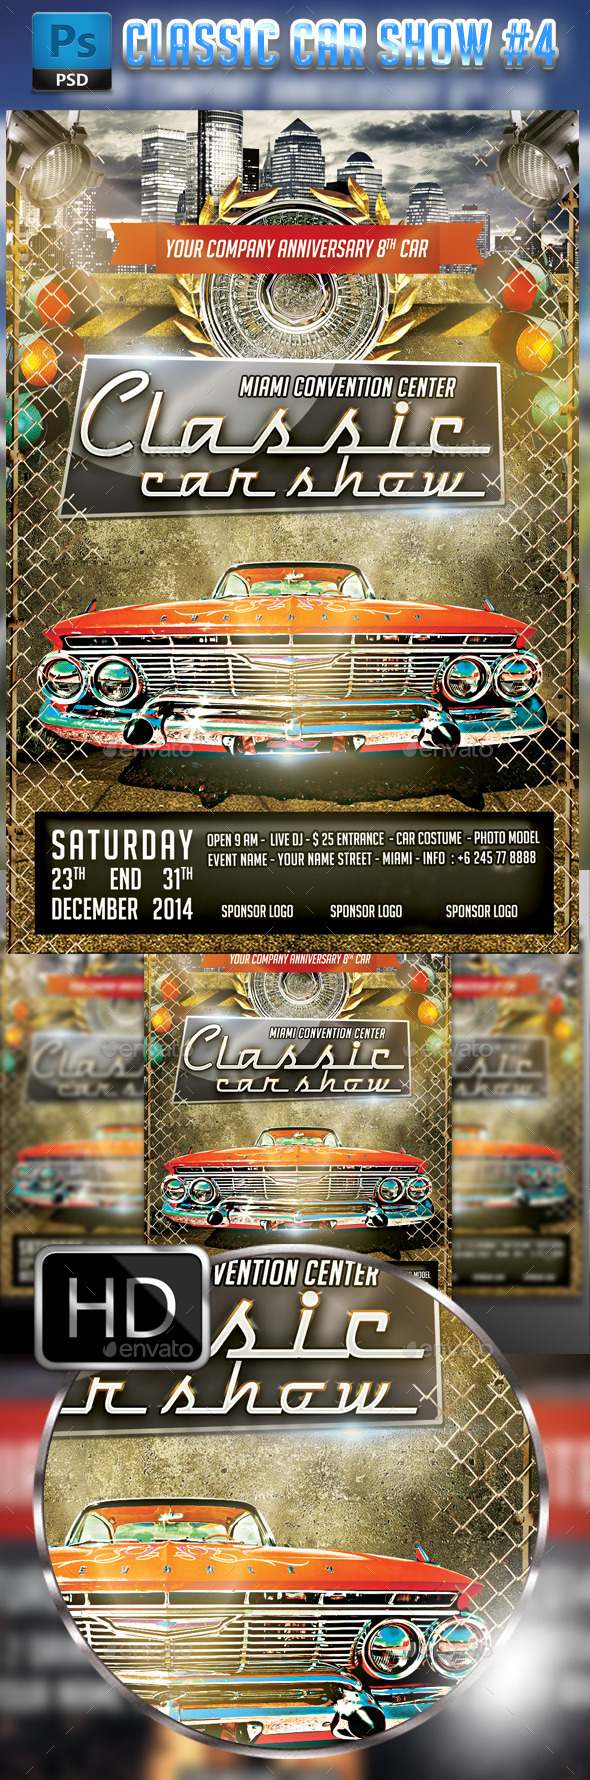 Classic Car Show Flyer #4 - Events Flyers